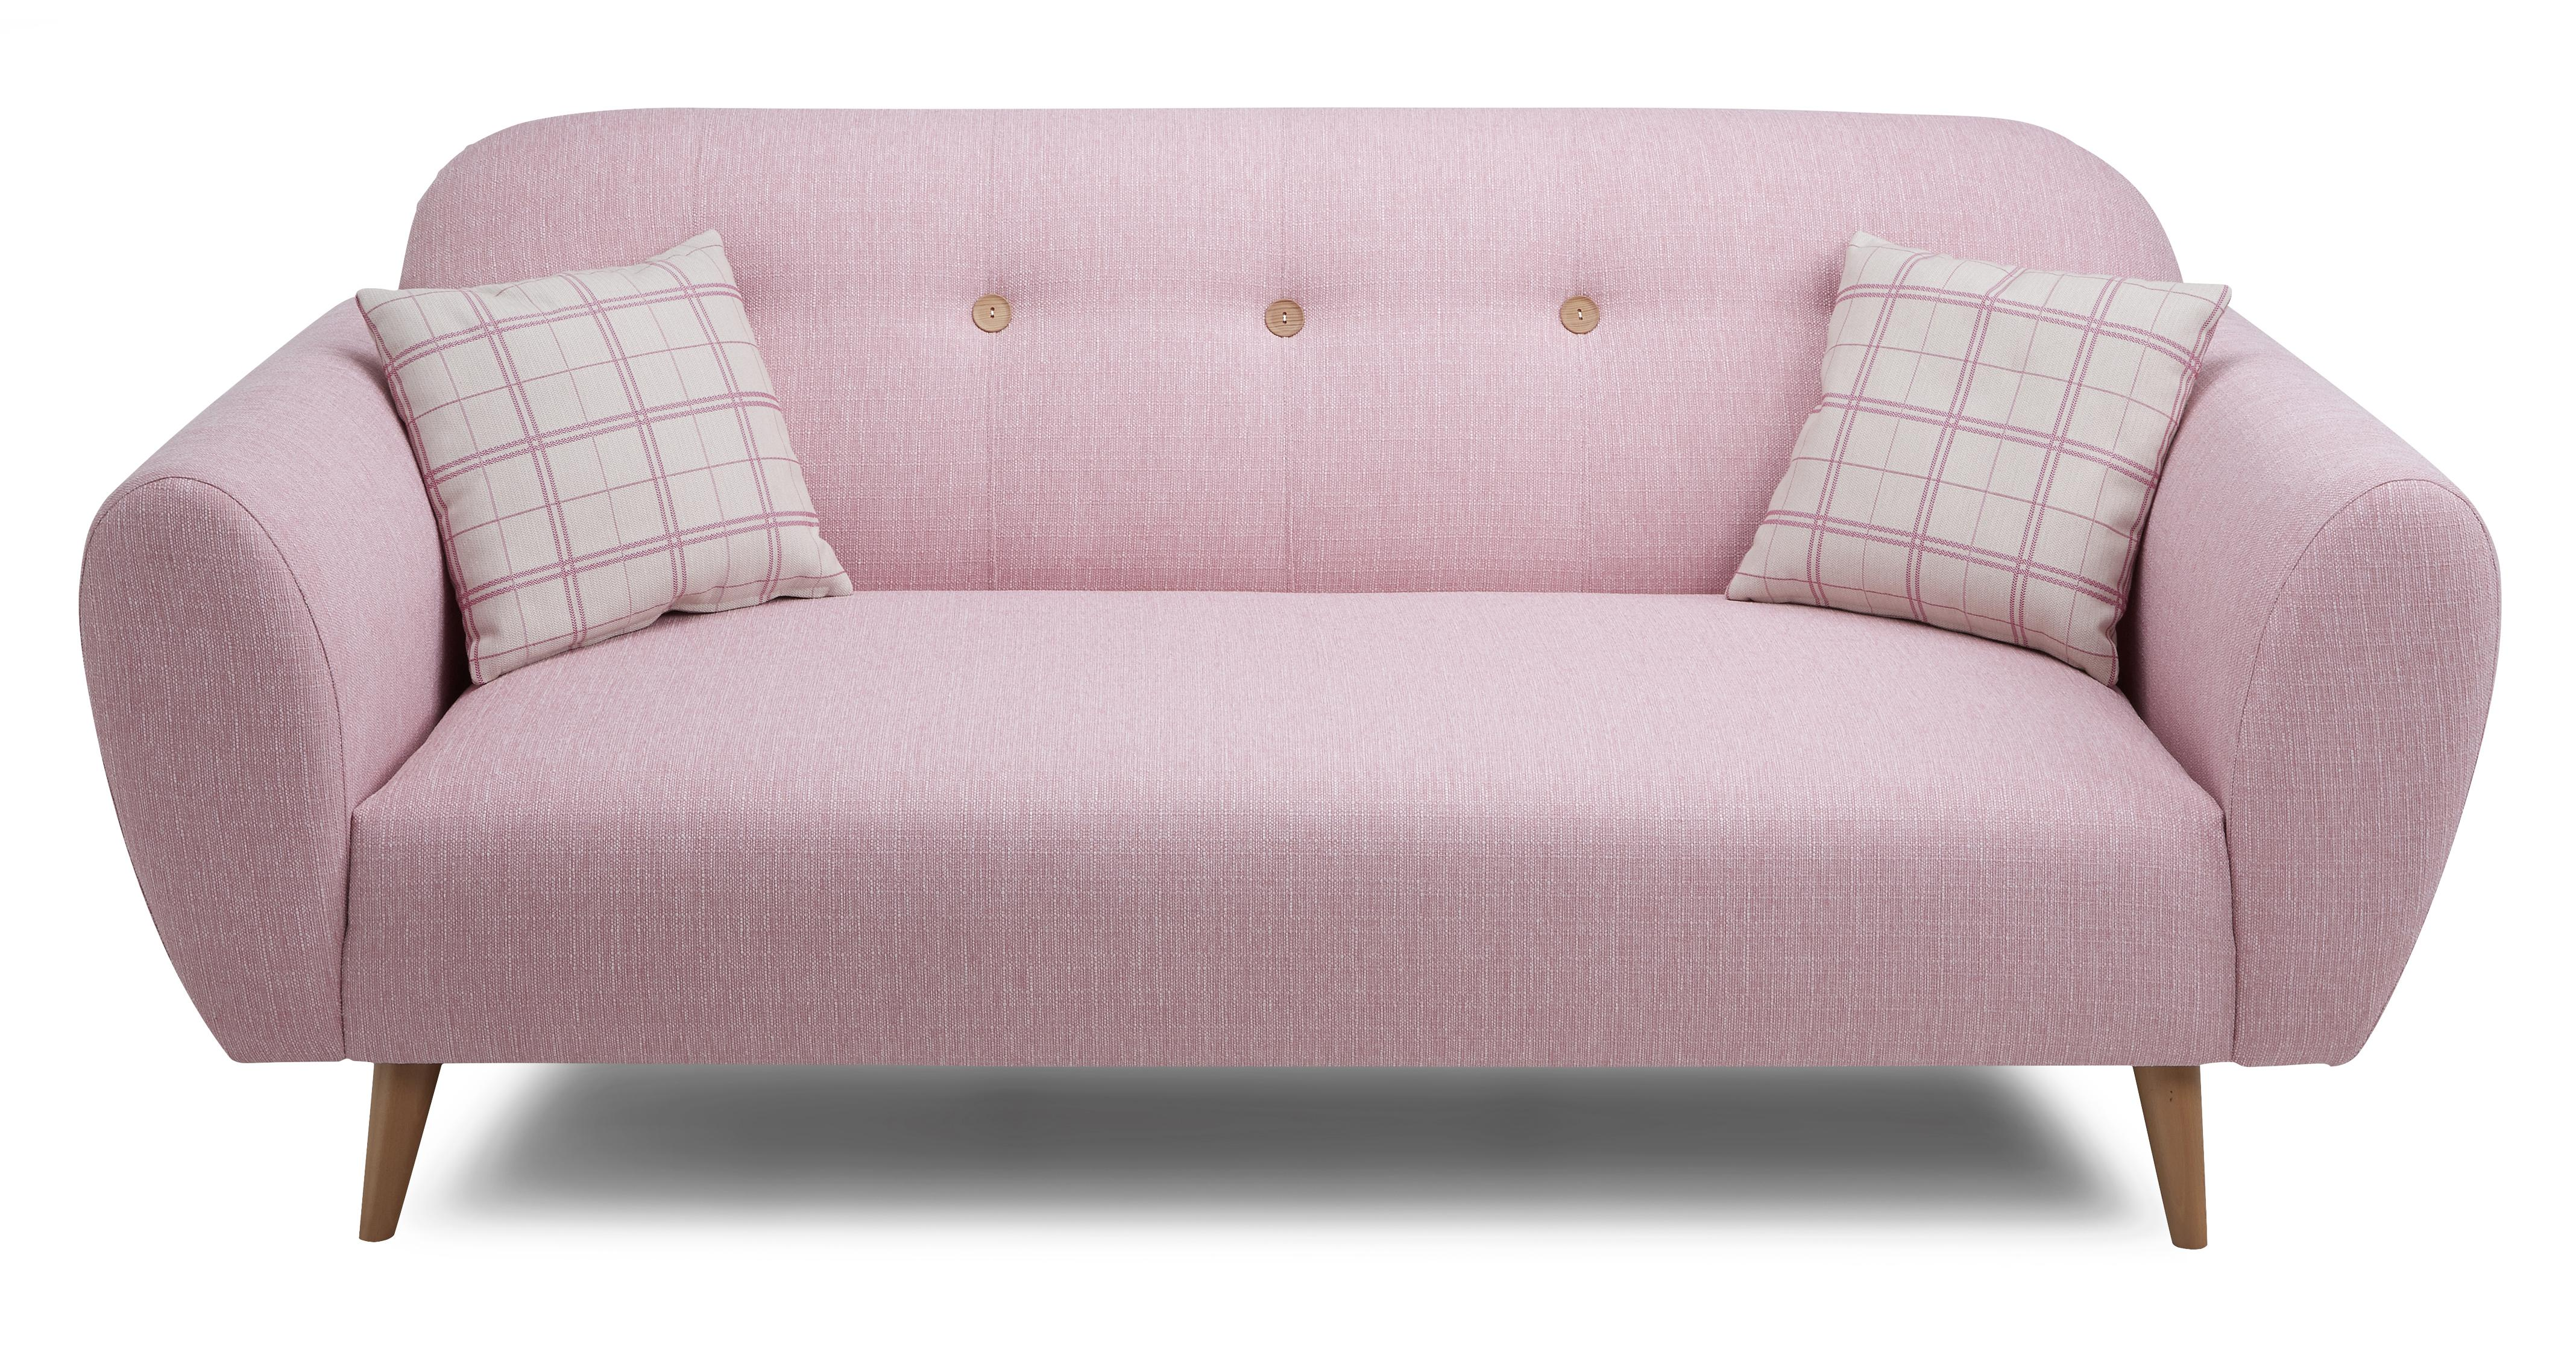 Sofa Cushions For Sale picture on 3 seater sofa betsy with Sofa Cushions For Sale, sofa 2d95ec59f8cc7b1a287fd79024b969d6